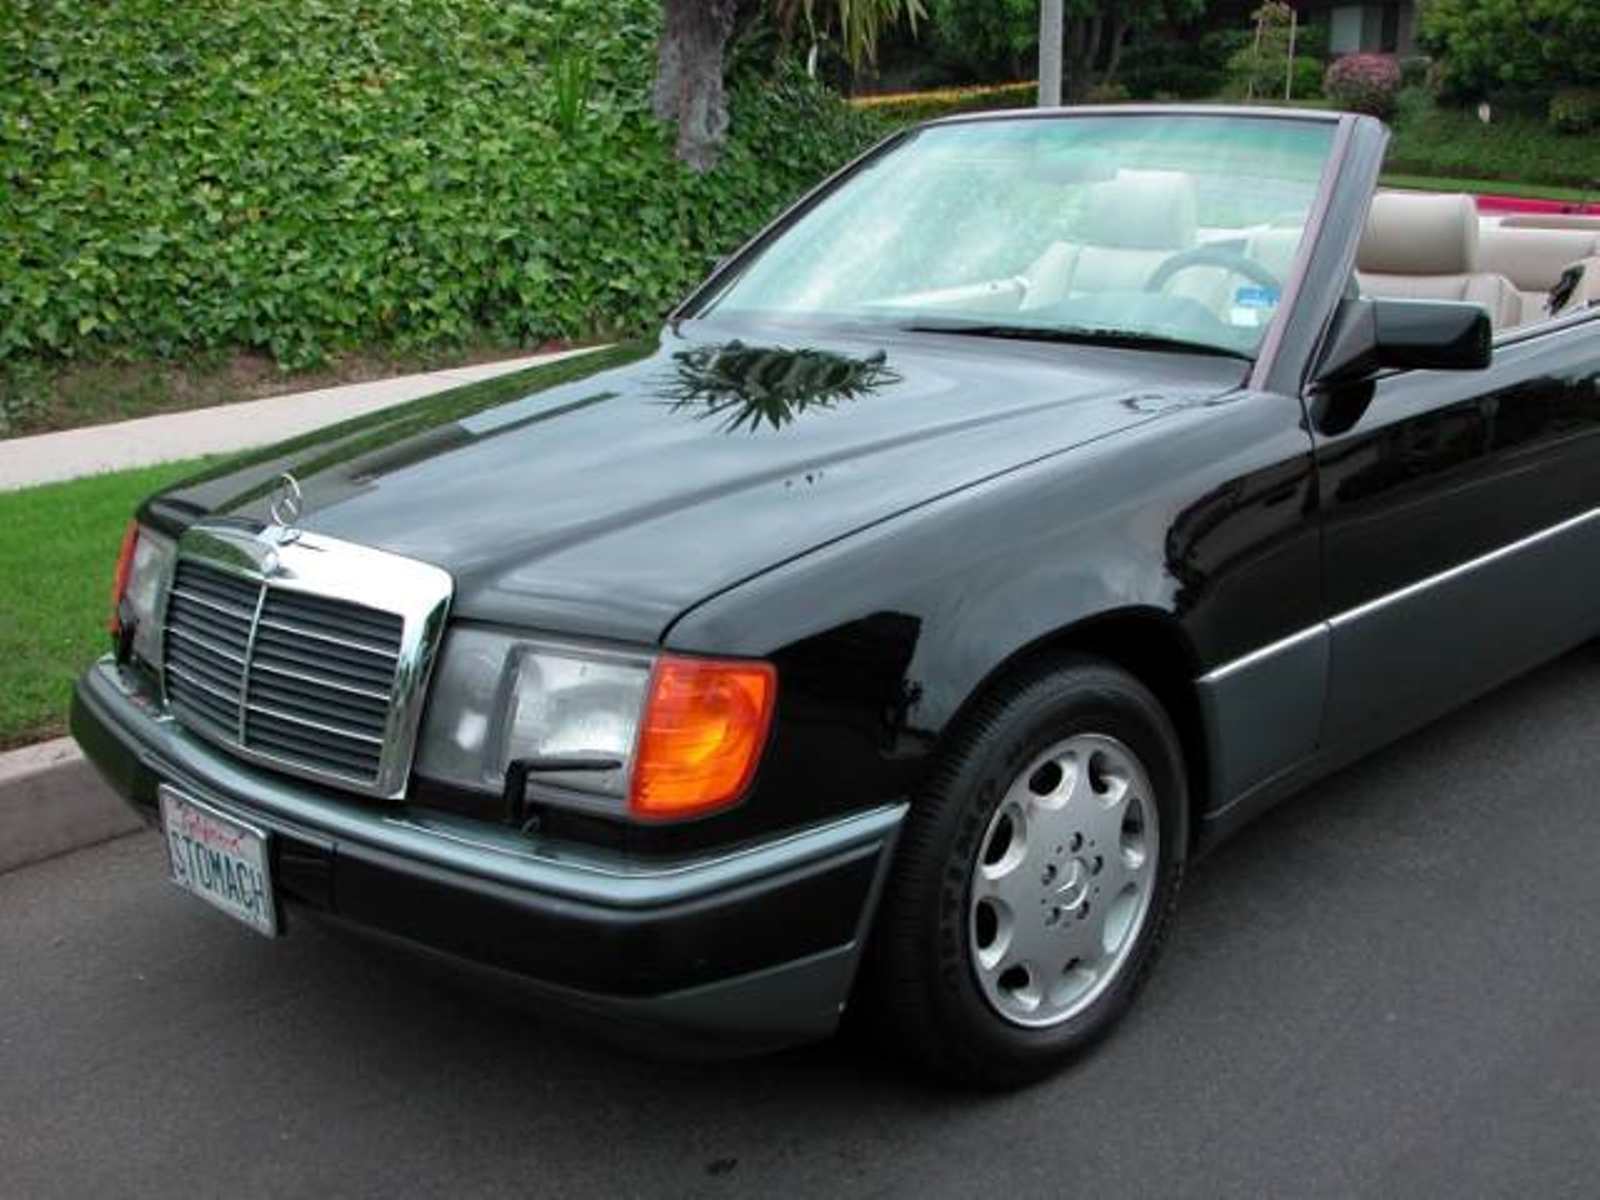 1993 mercedes benz 300 series cabriolet 300ce low miles california car super clean city. Black Bedroom Furniture Sets. Home Design Ideas